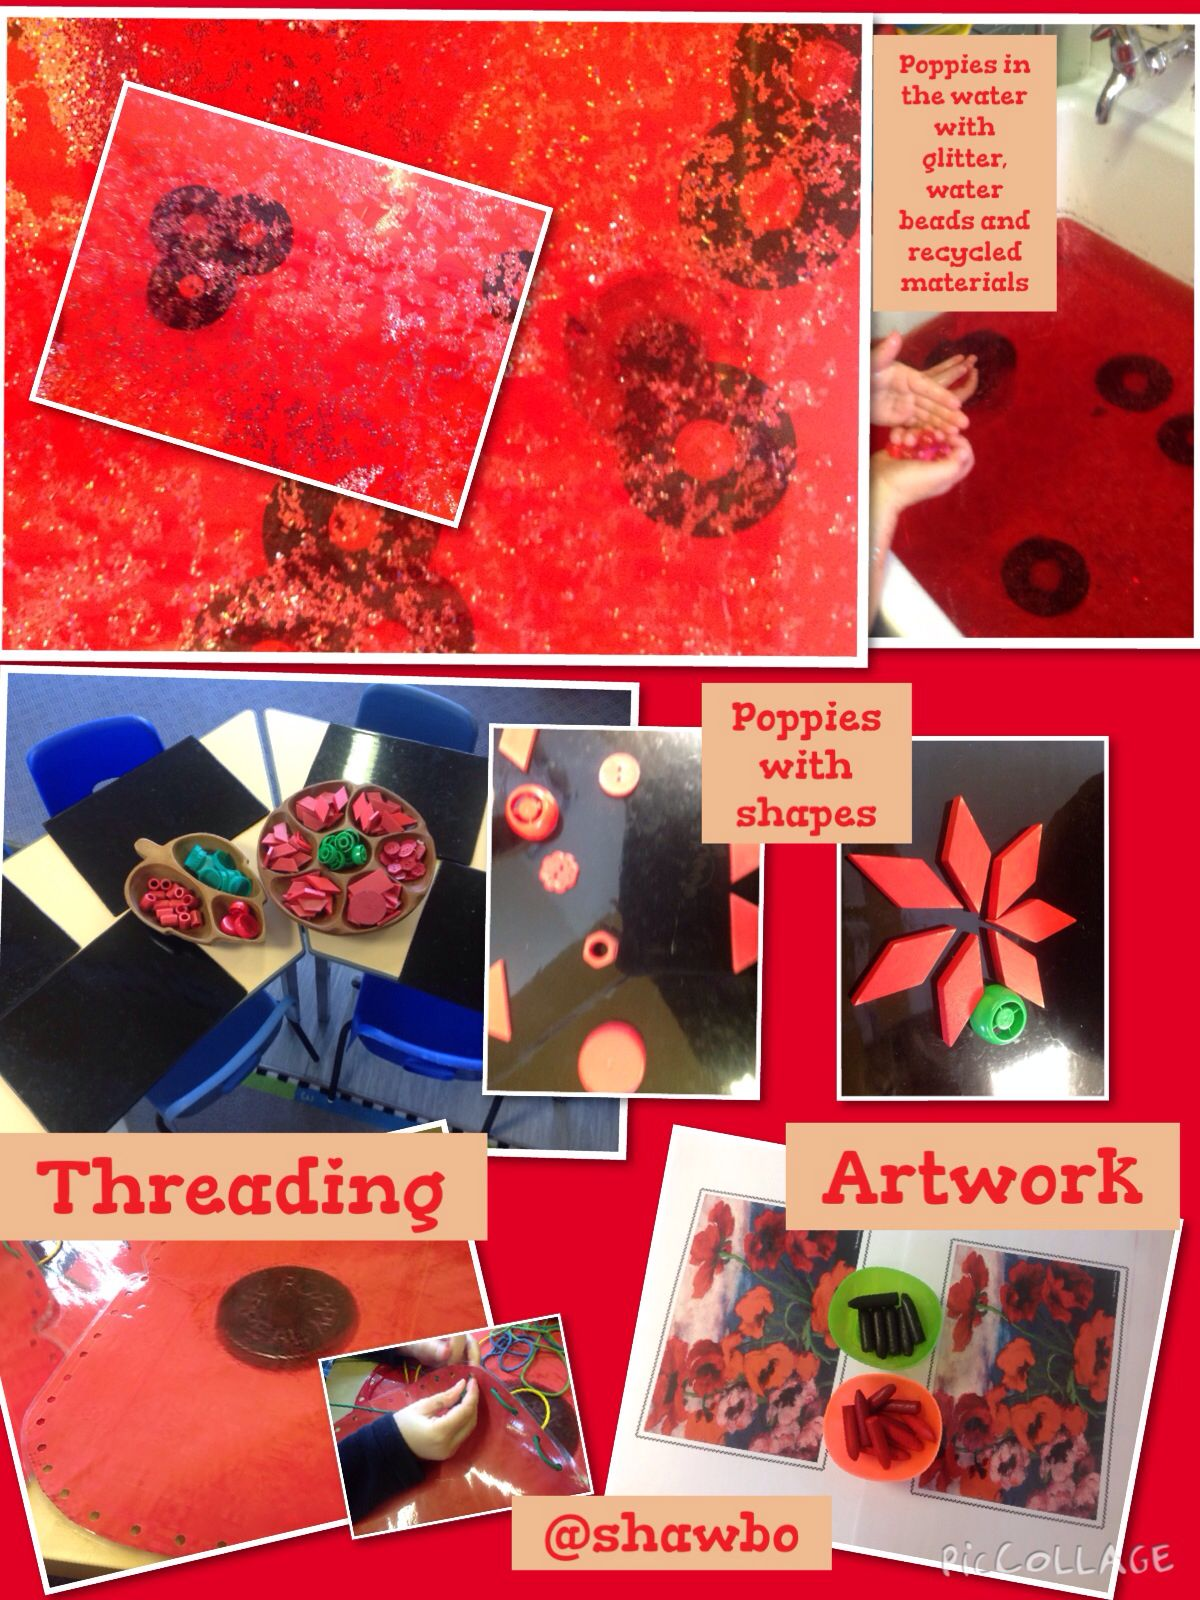 Poppy provision and inspiration